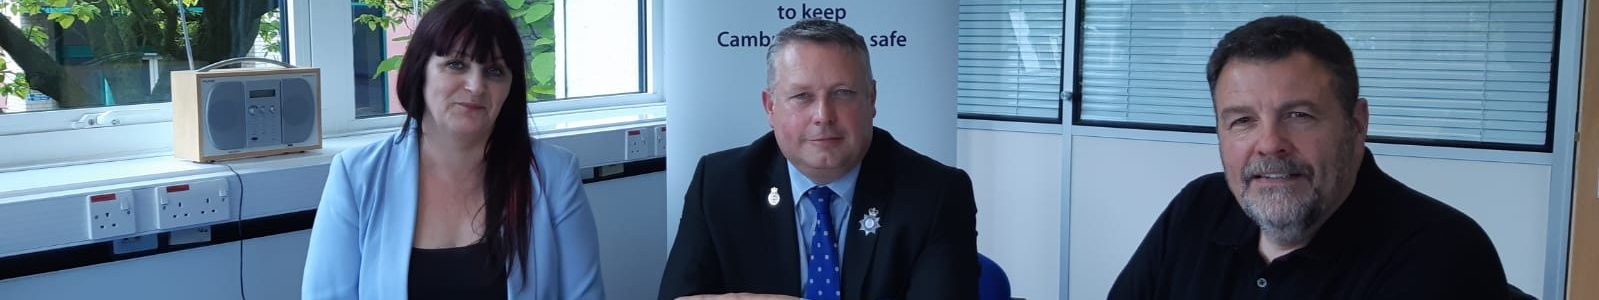 Commissioner praises nurses providing officers with expert advice